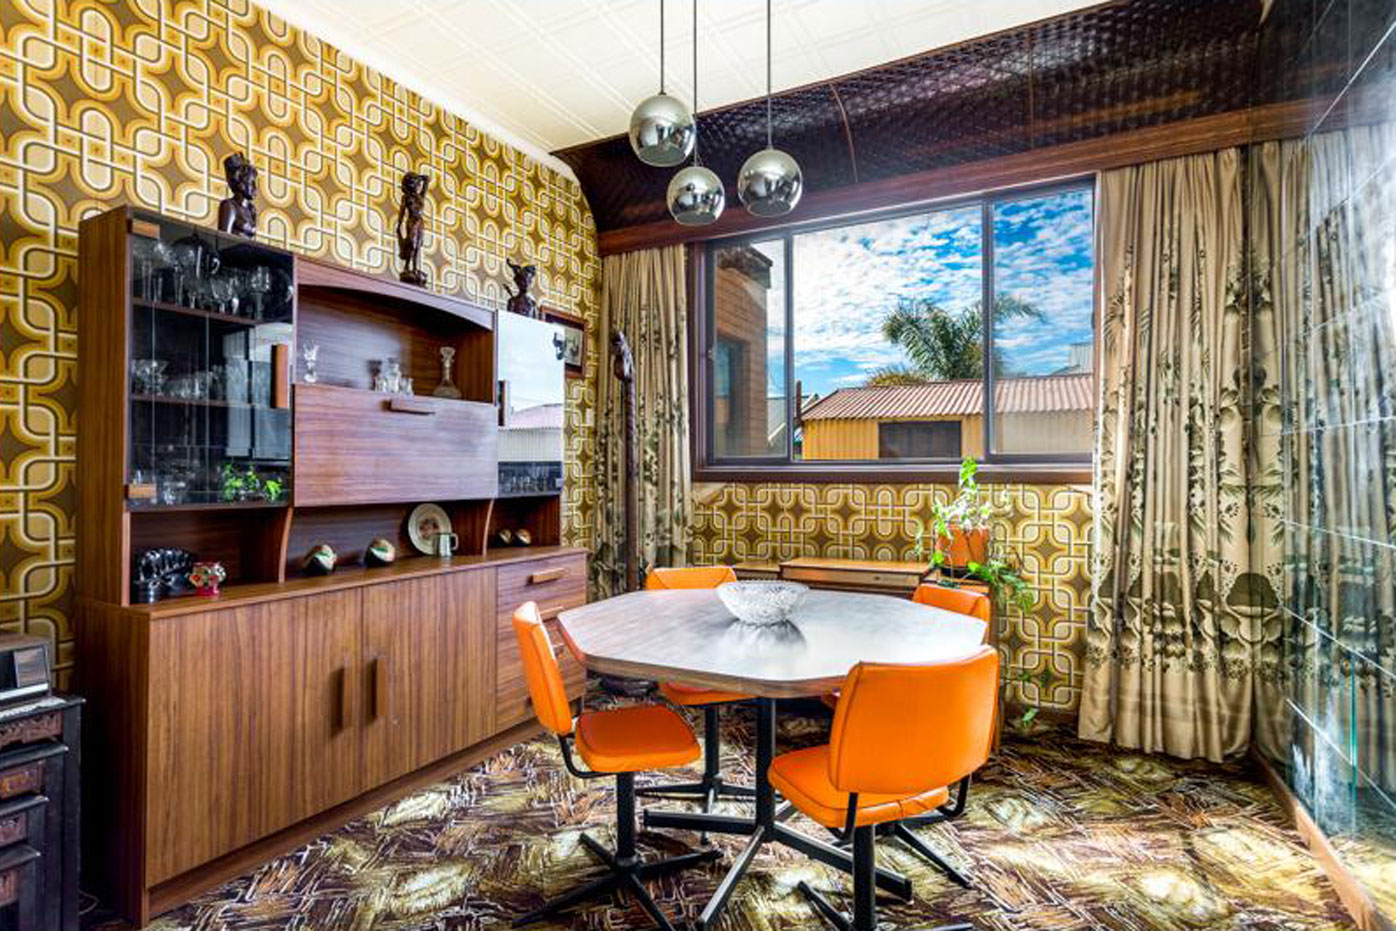 This Adelaide home is a '40s time warp - 9homes